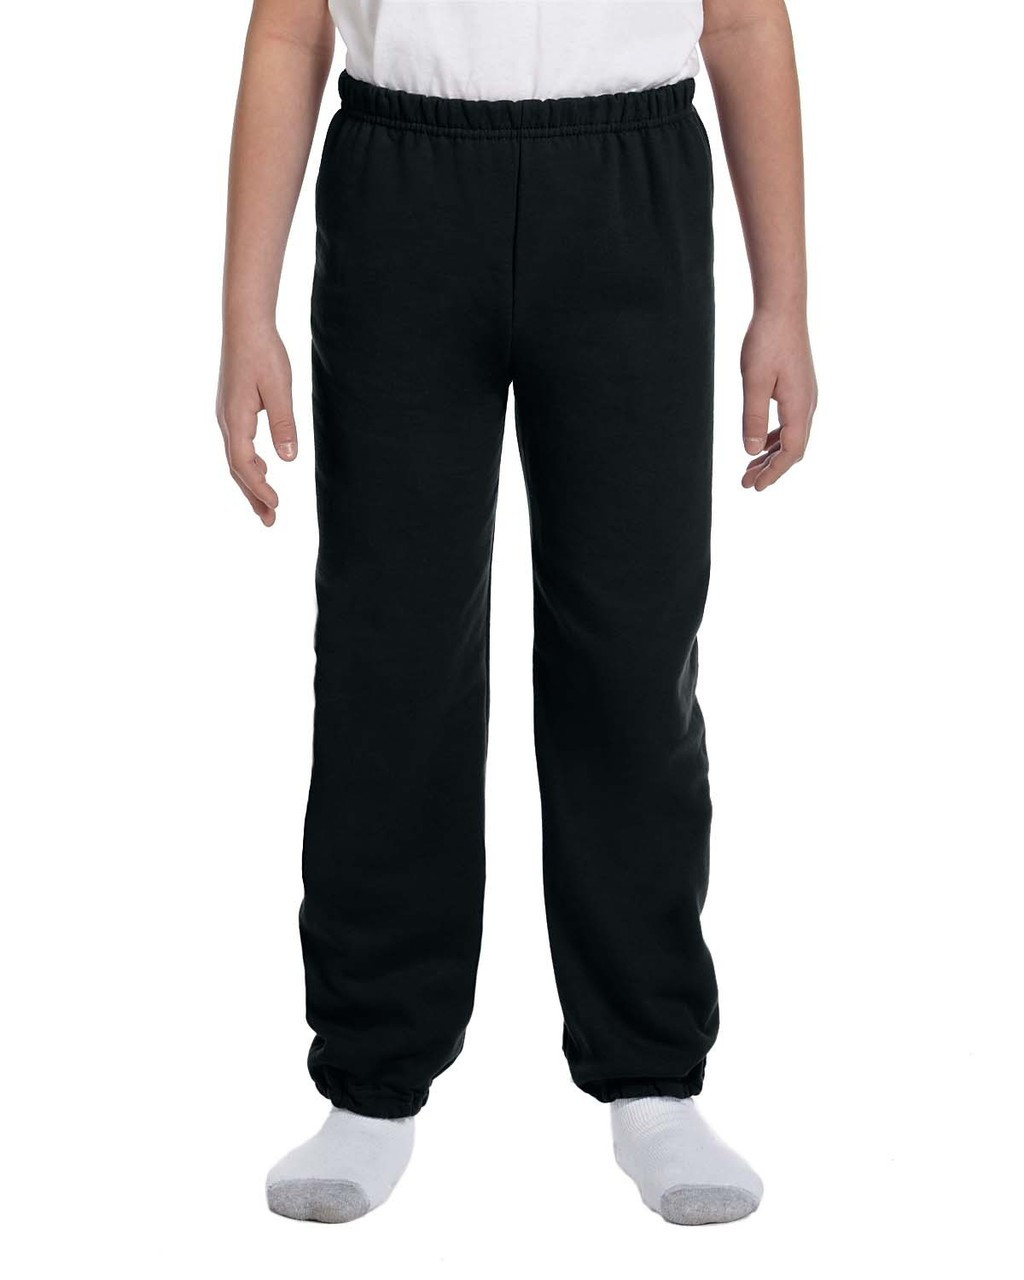 Black - G182B Gildan Heavy Blend Youth 50/50 Sweatpants | Blankclothing.ca